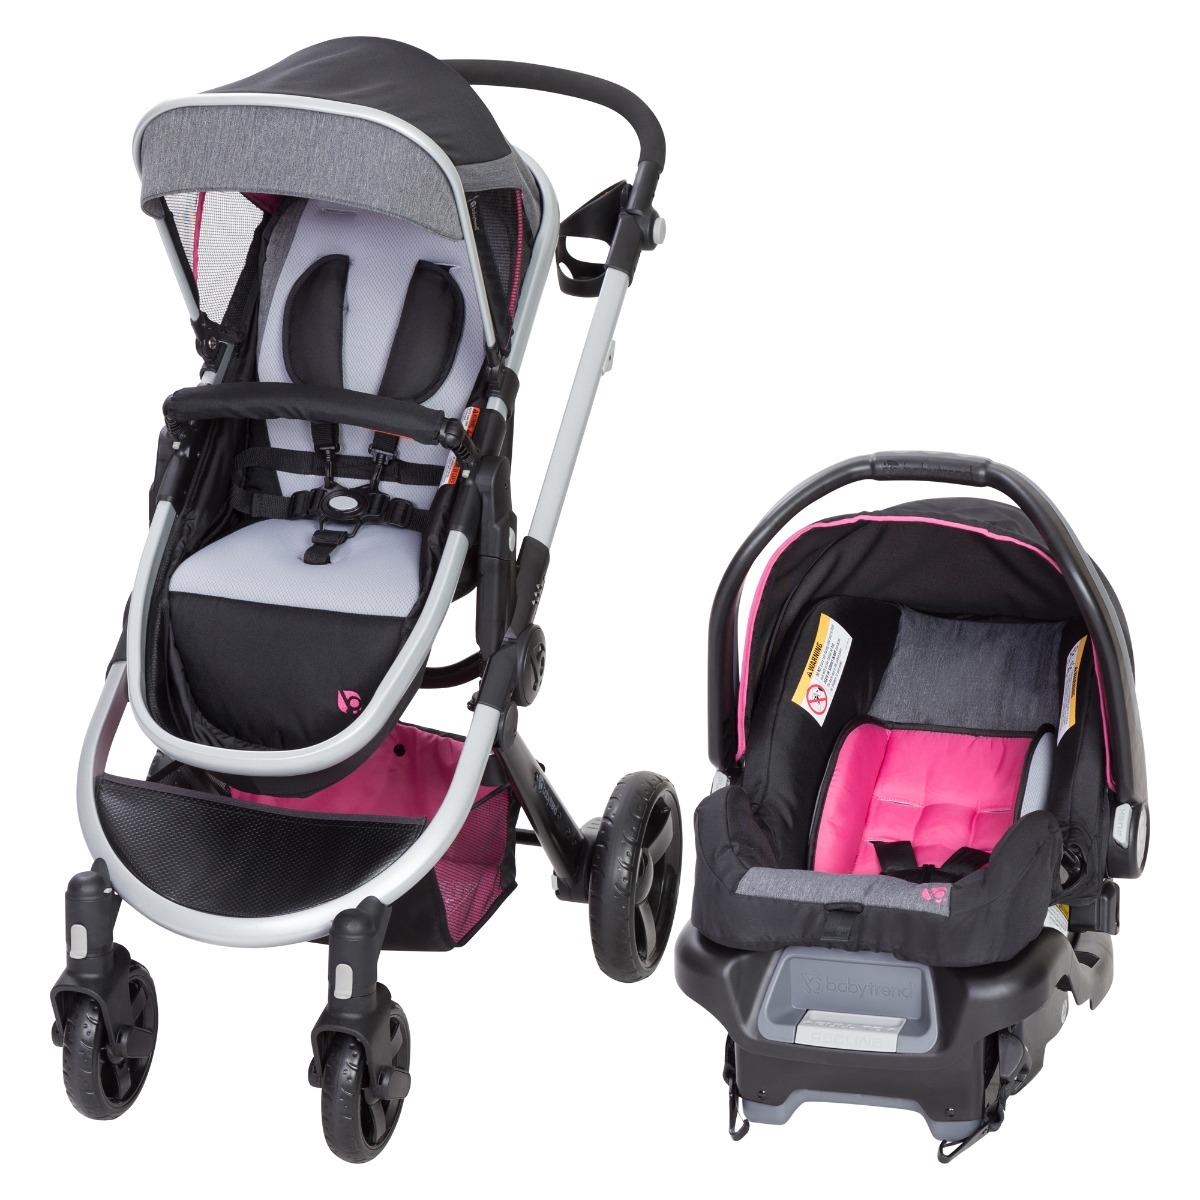 Baby Trend Espy 35 Travel System - Patagonia